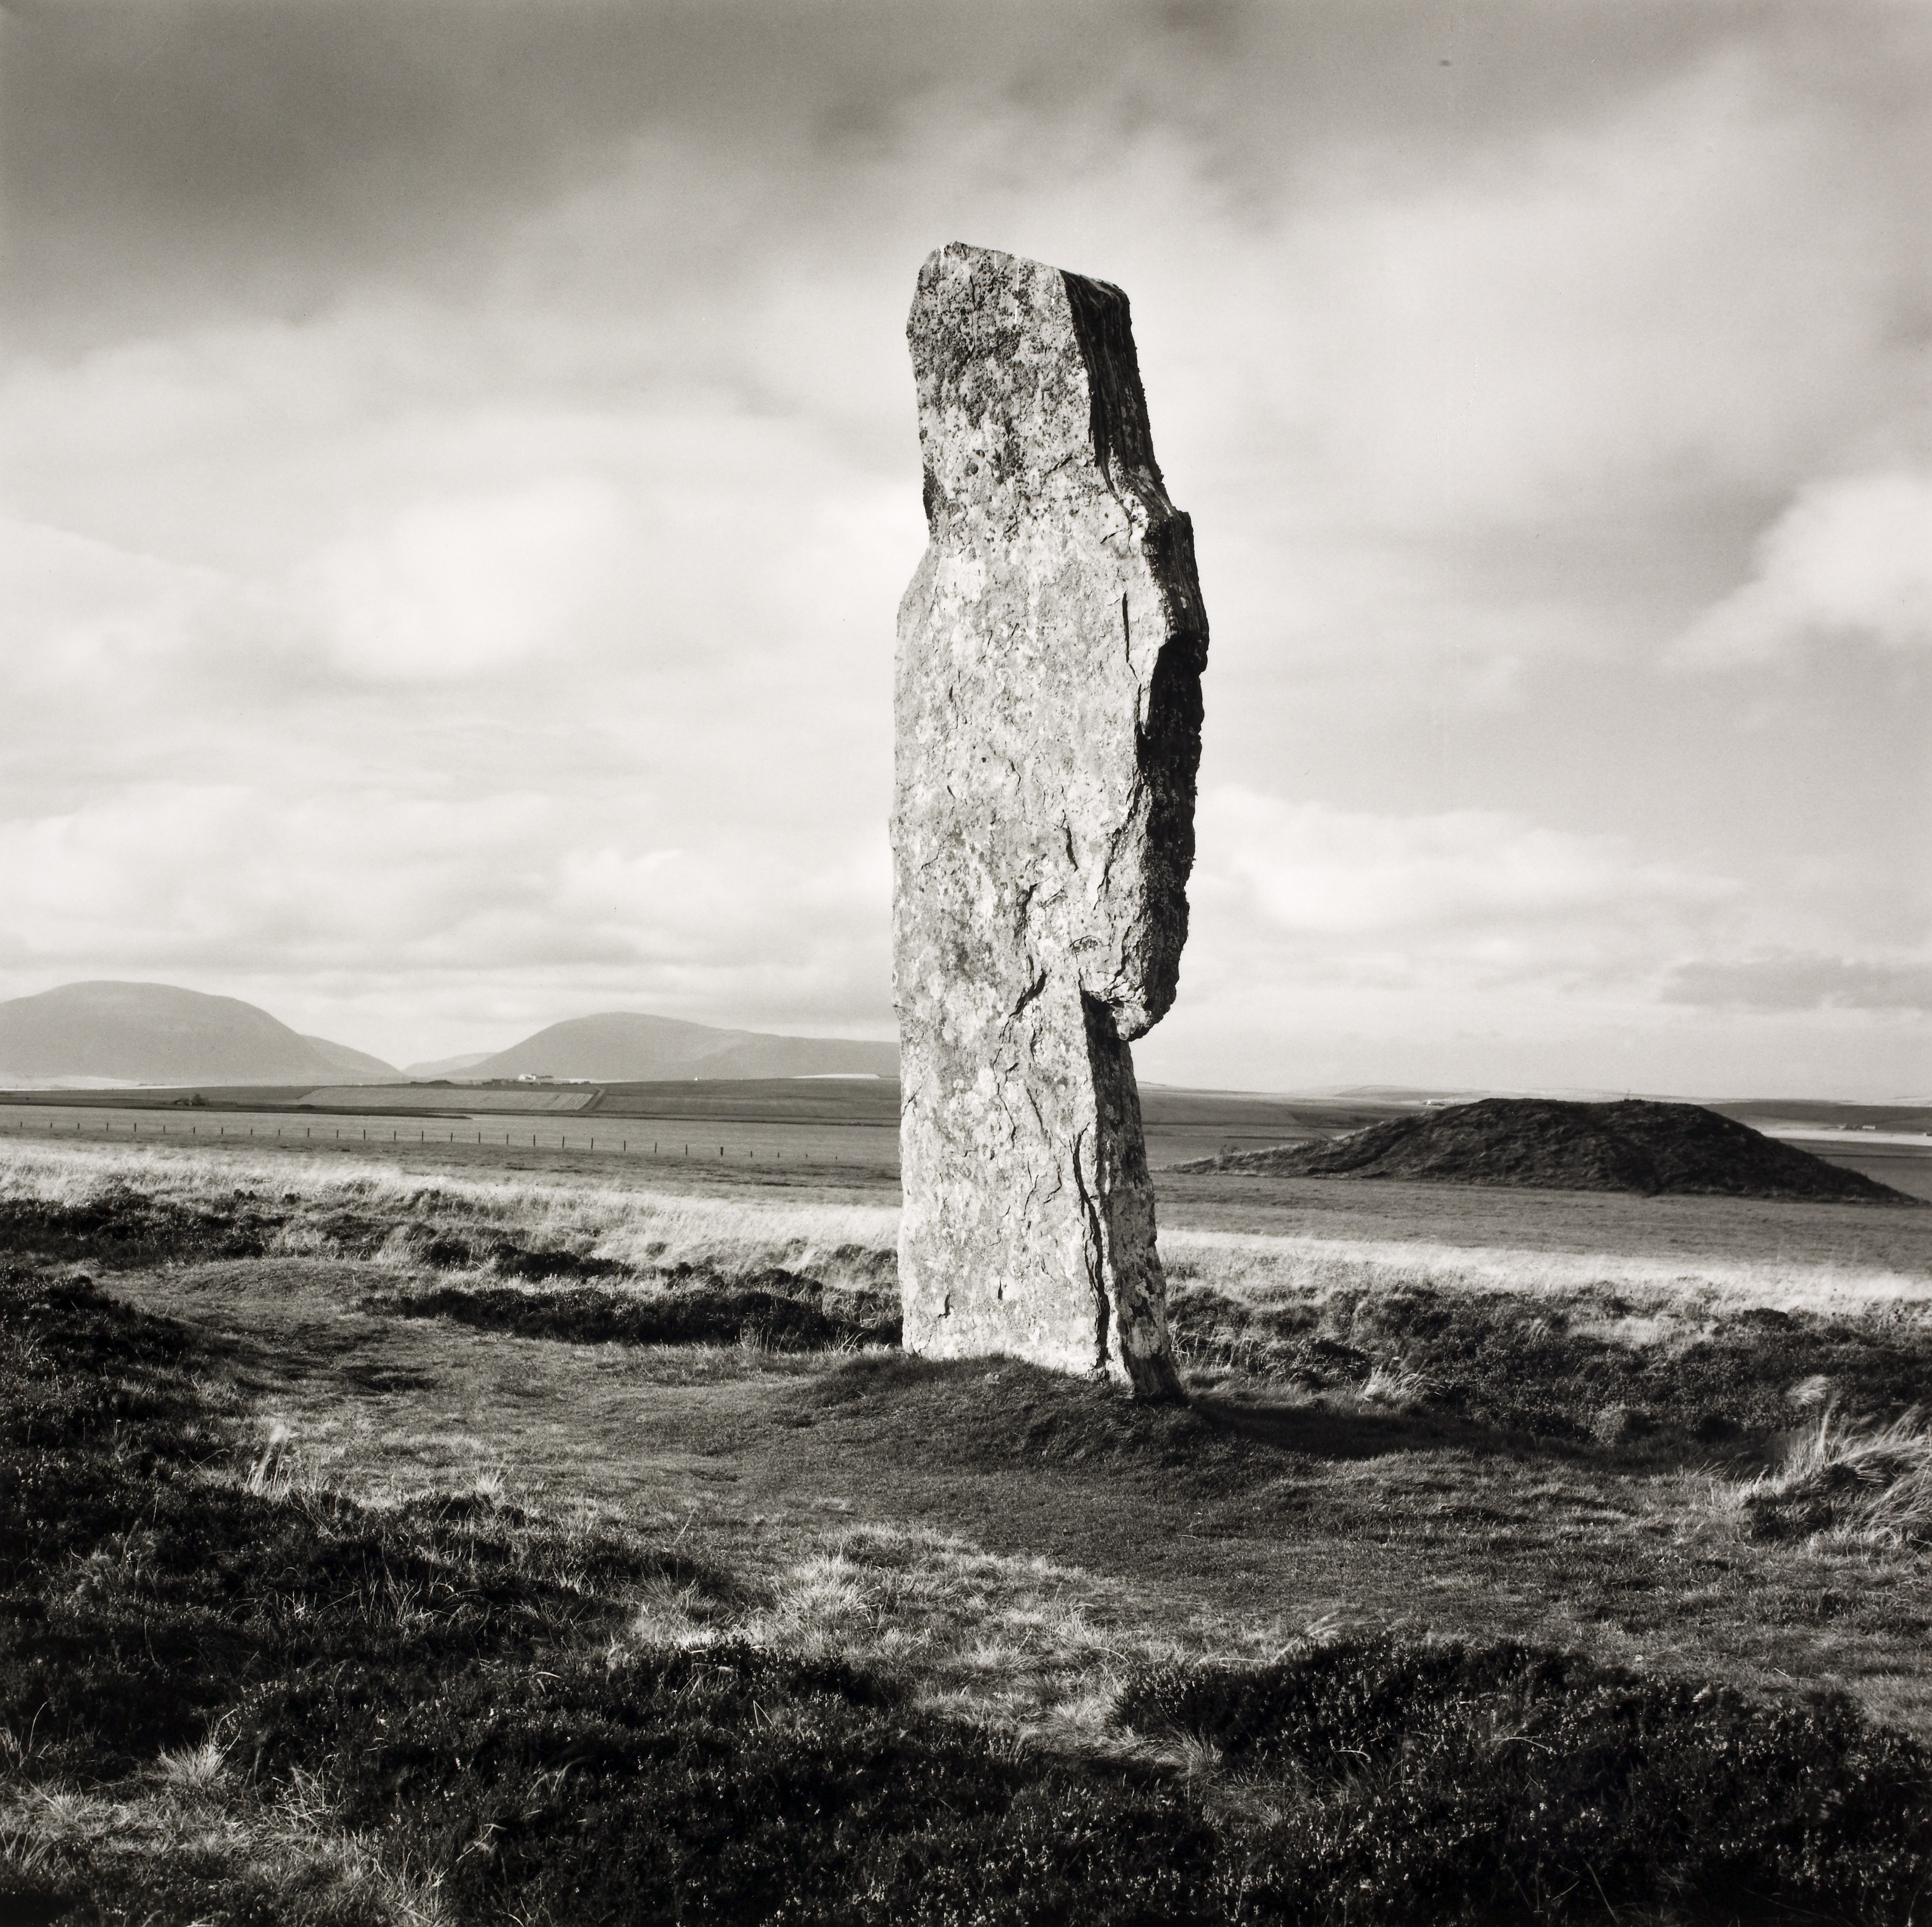 Single Stone, Ring of Broga 1979. From ACGB series. Photograph by Fay Godwin.